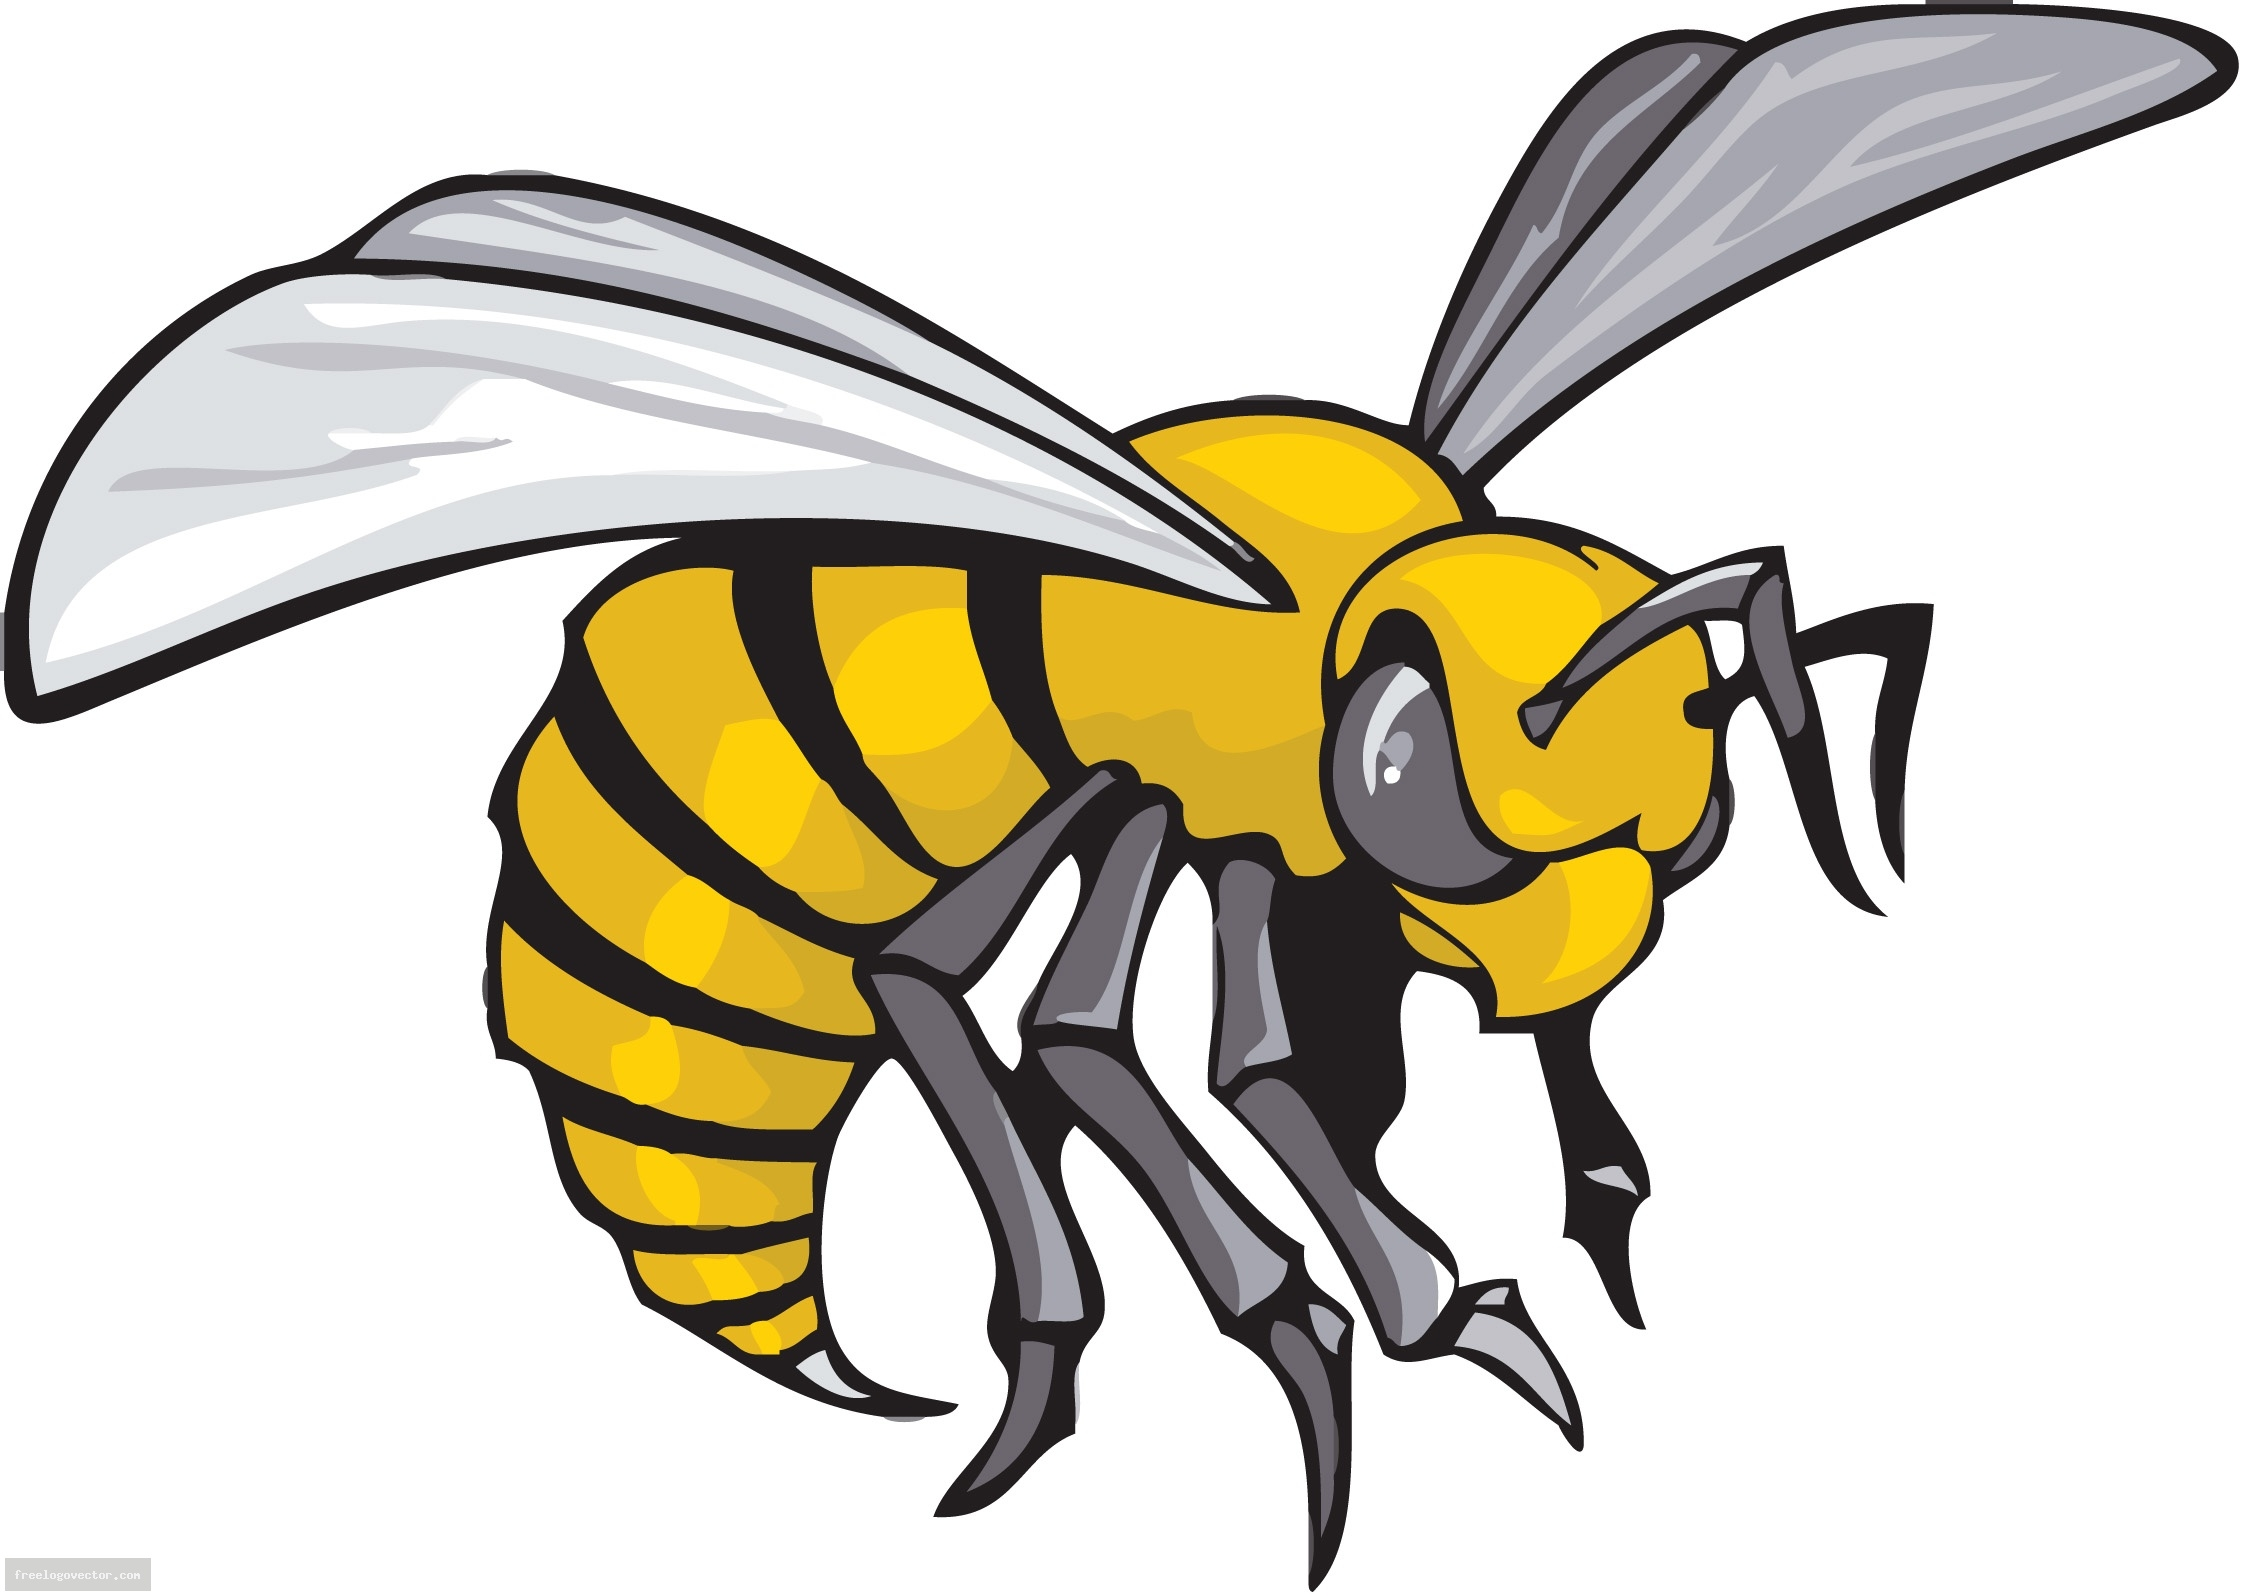 Unique design digital collection. Hornet clipart